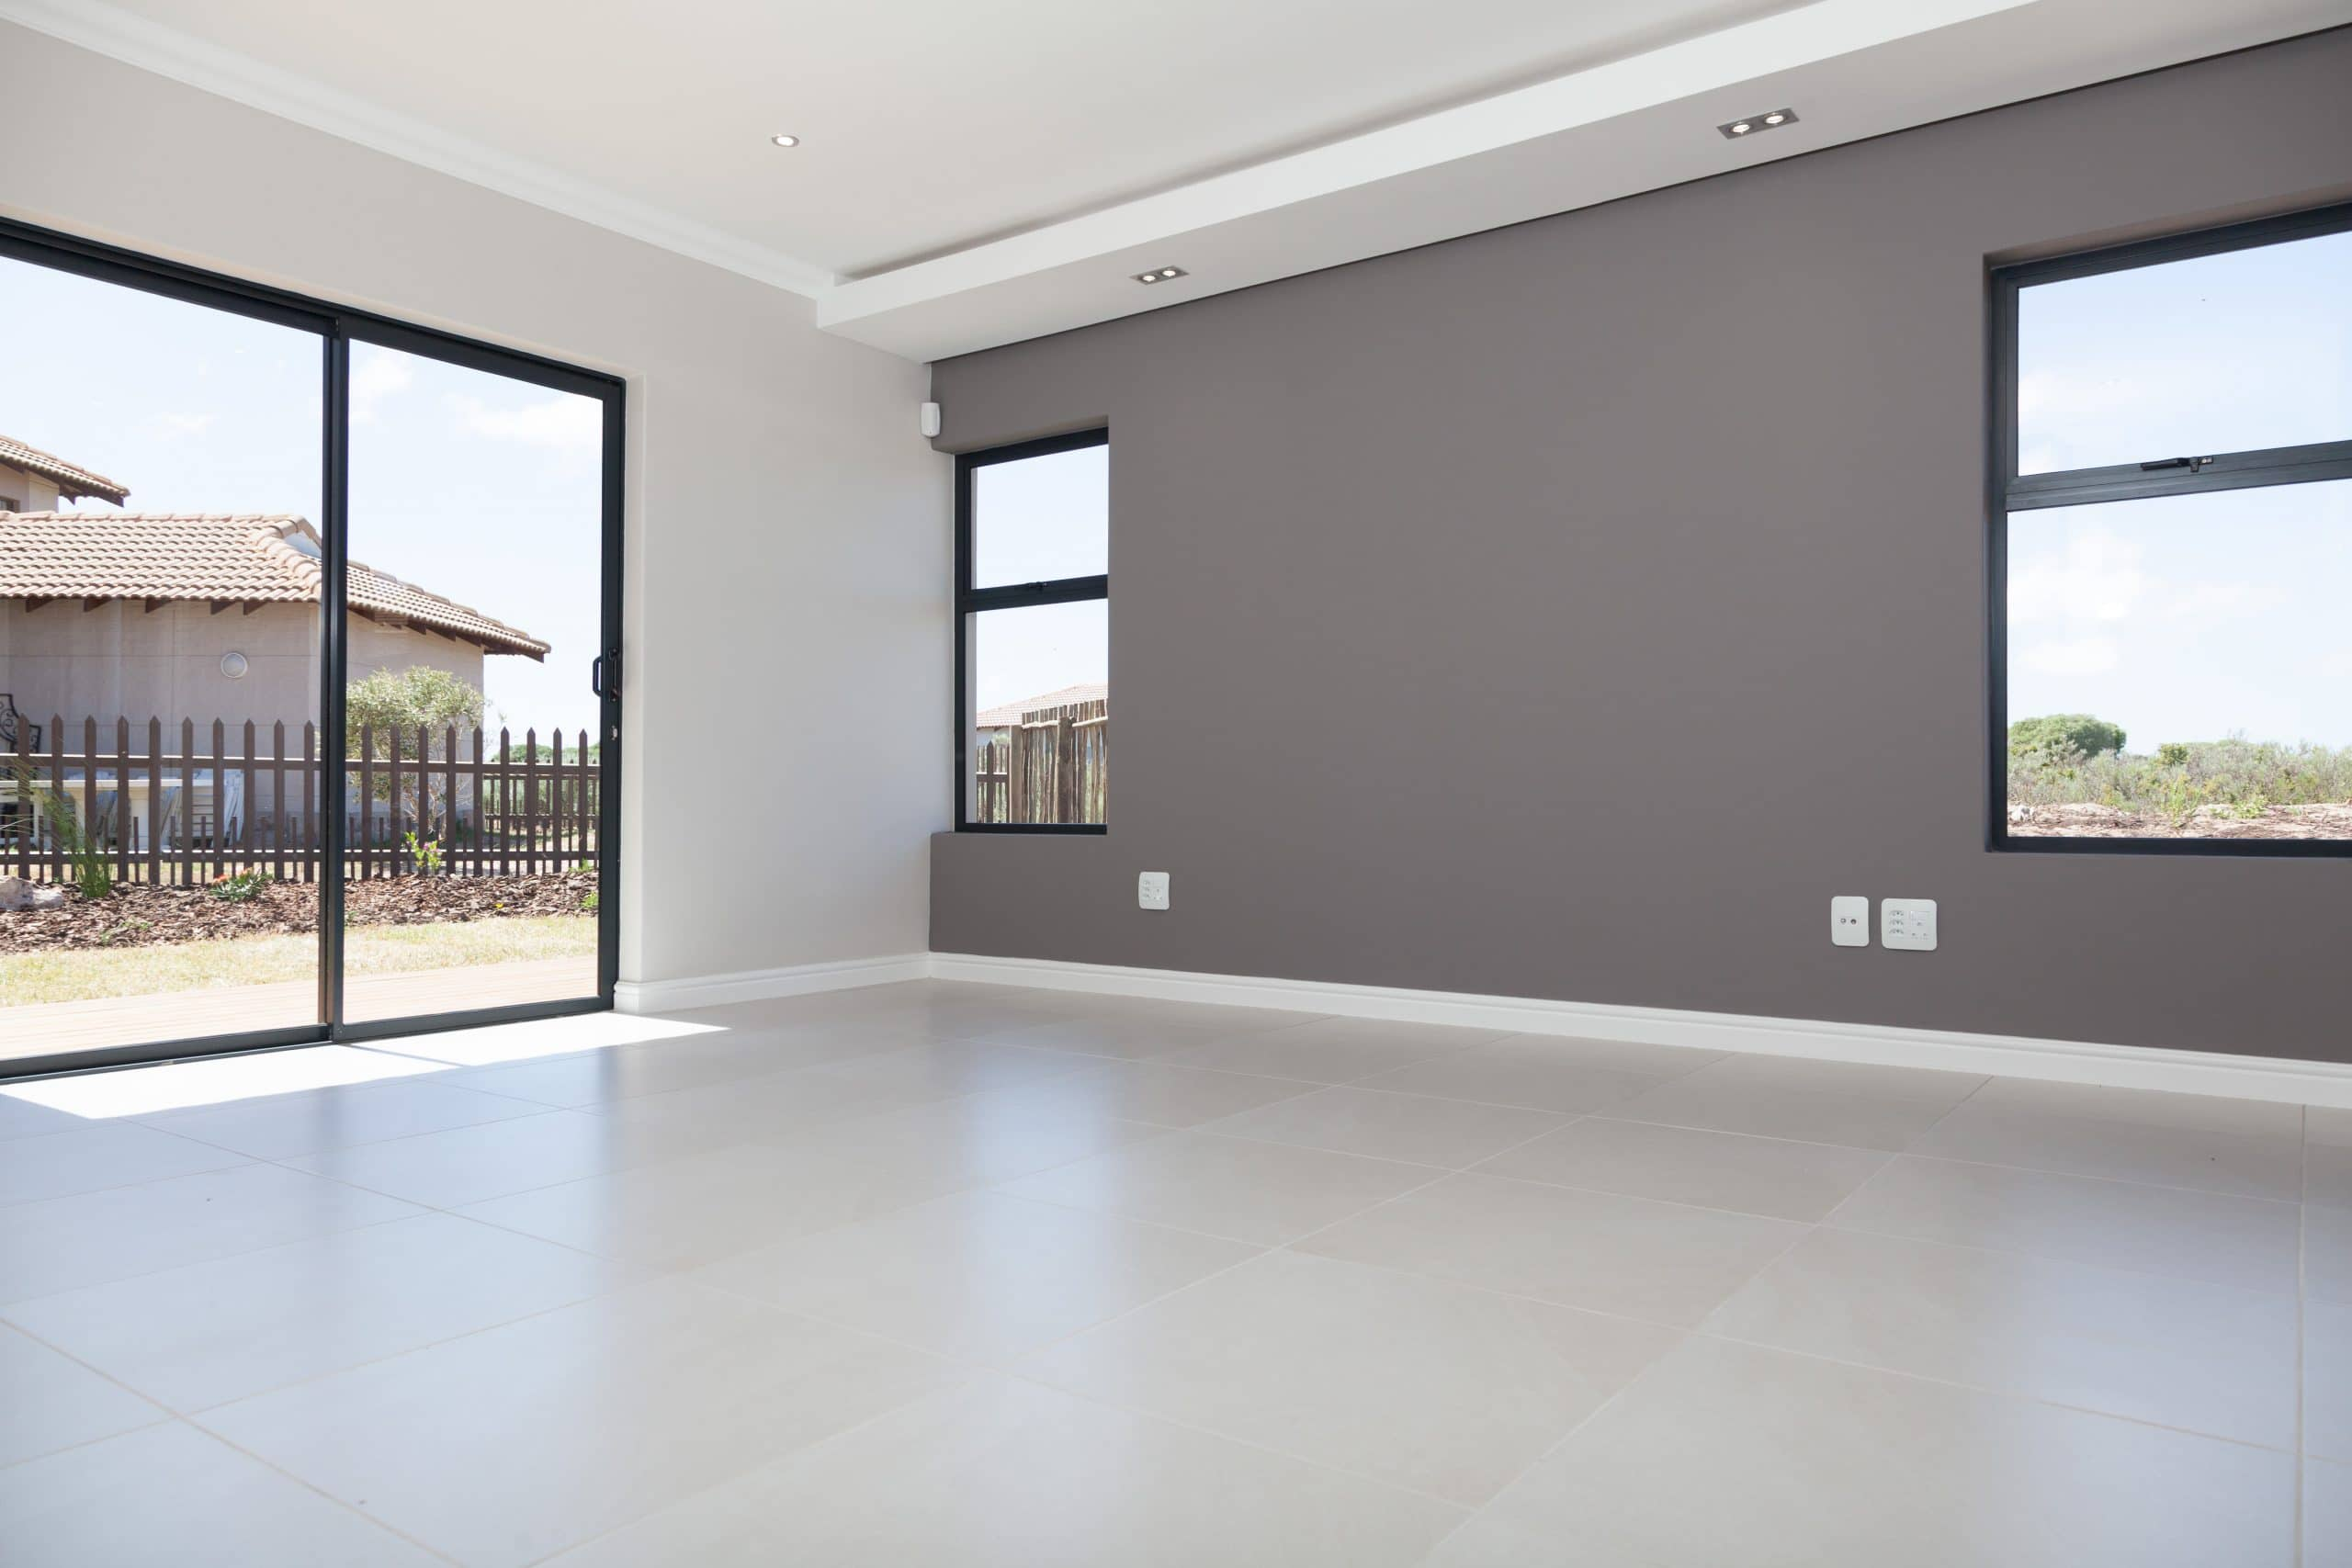 grey bedroom wall with bulkhead ceiling